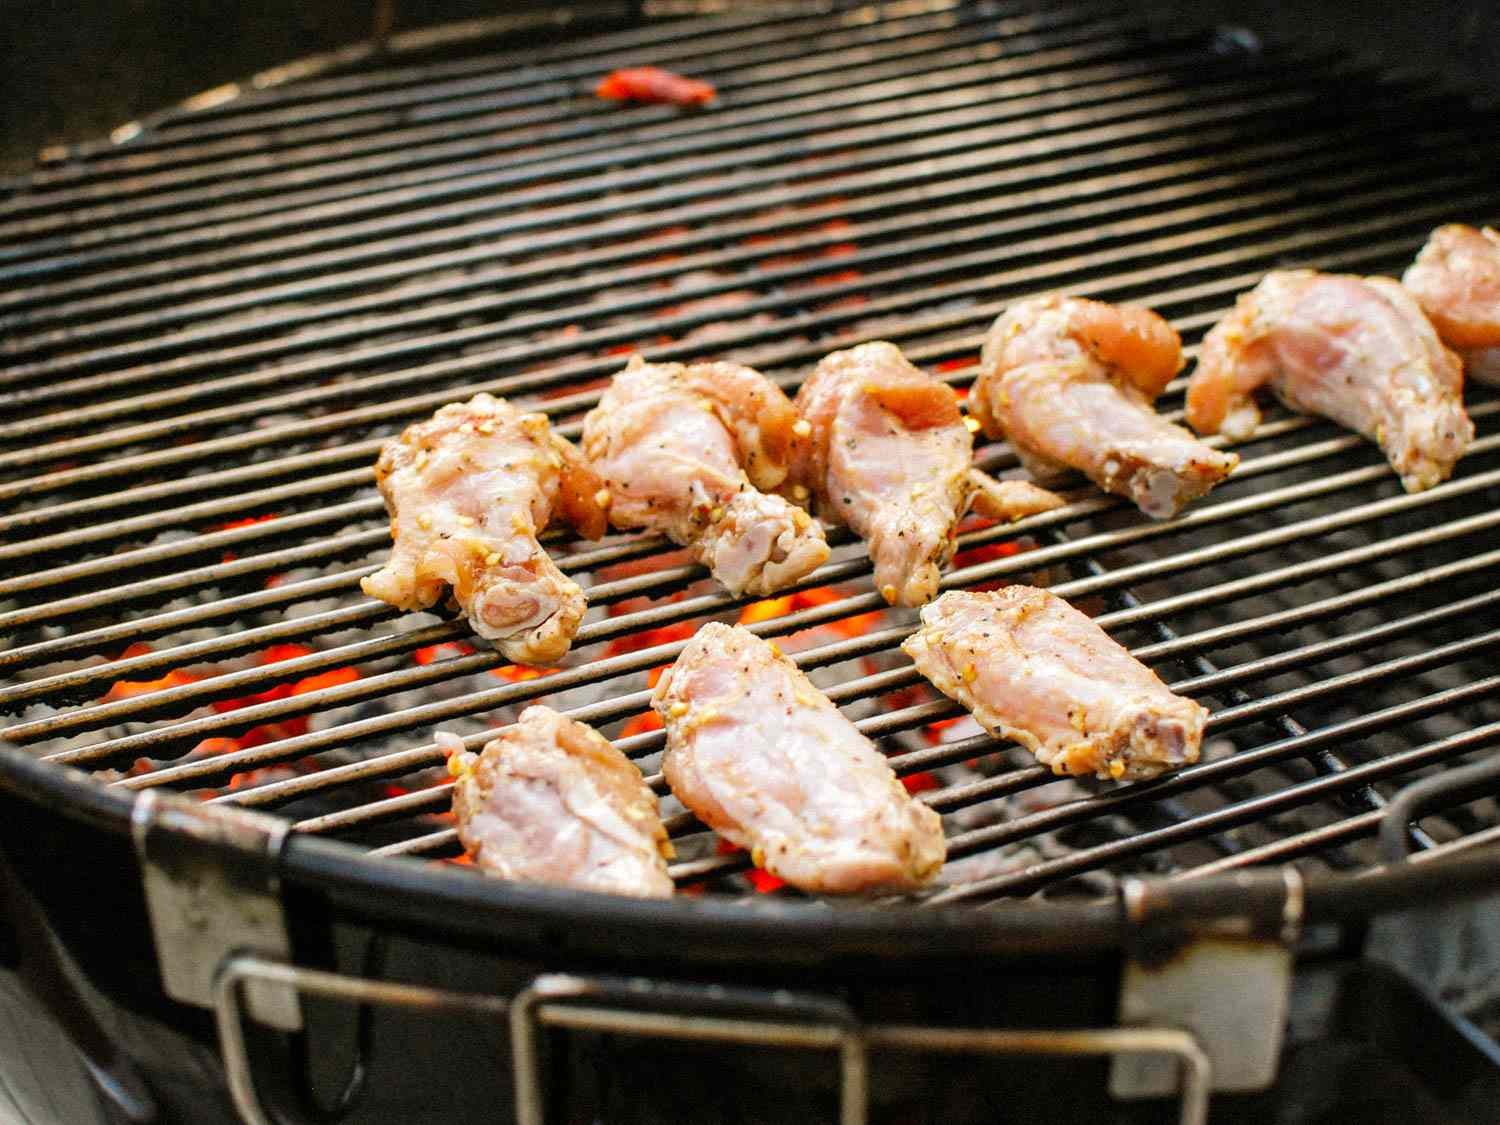 20150515-grilled-spicy-chicken-wings-soy-sauce-fish-sauce-shao-zhong-2.jpg